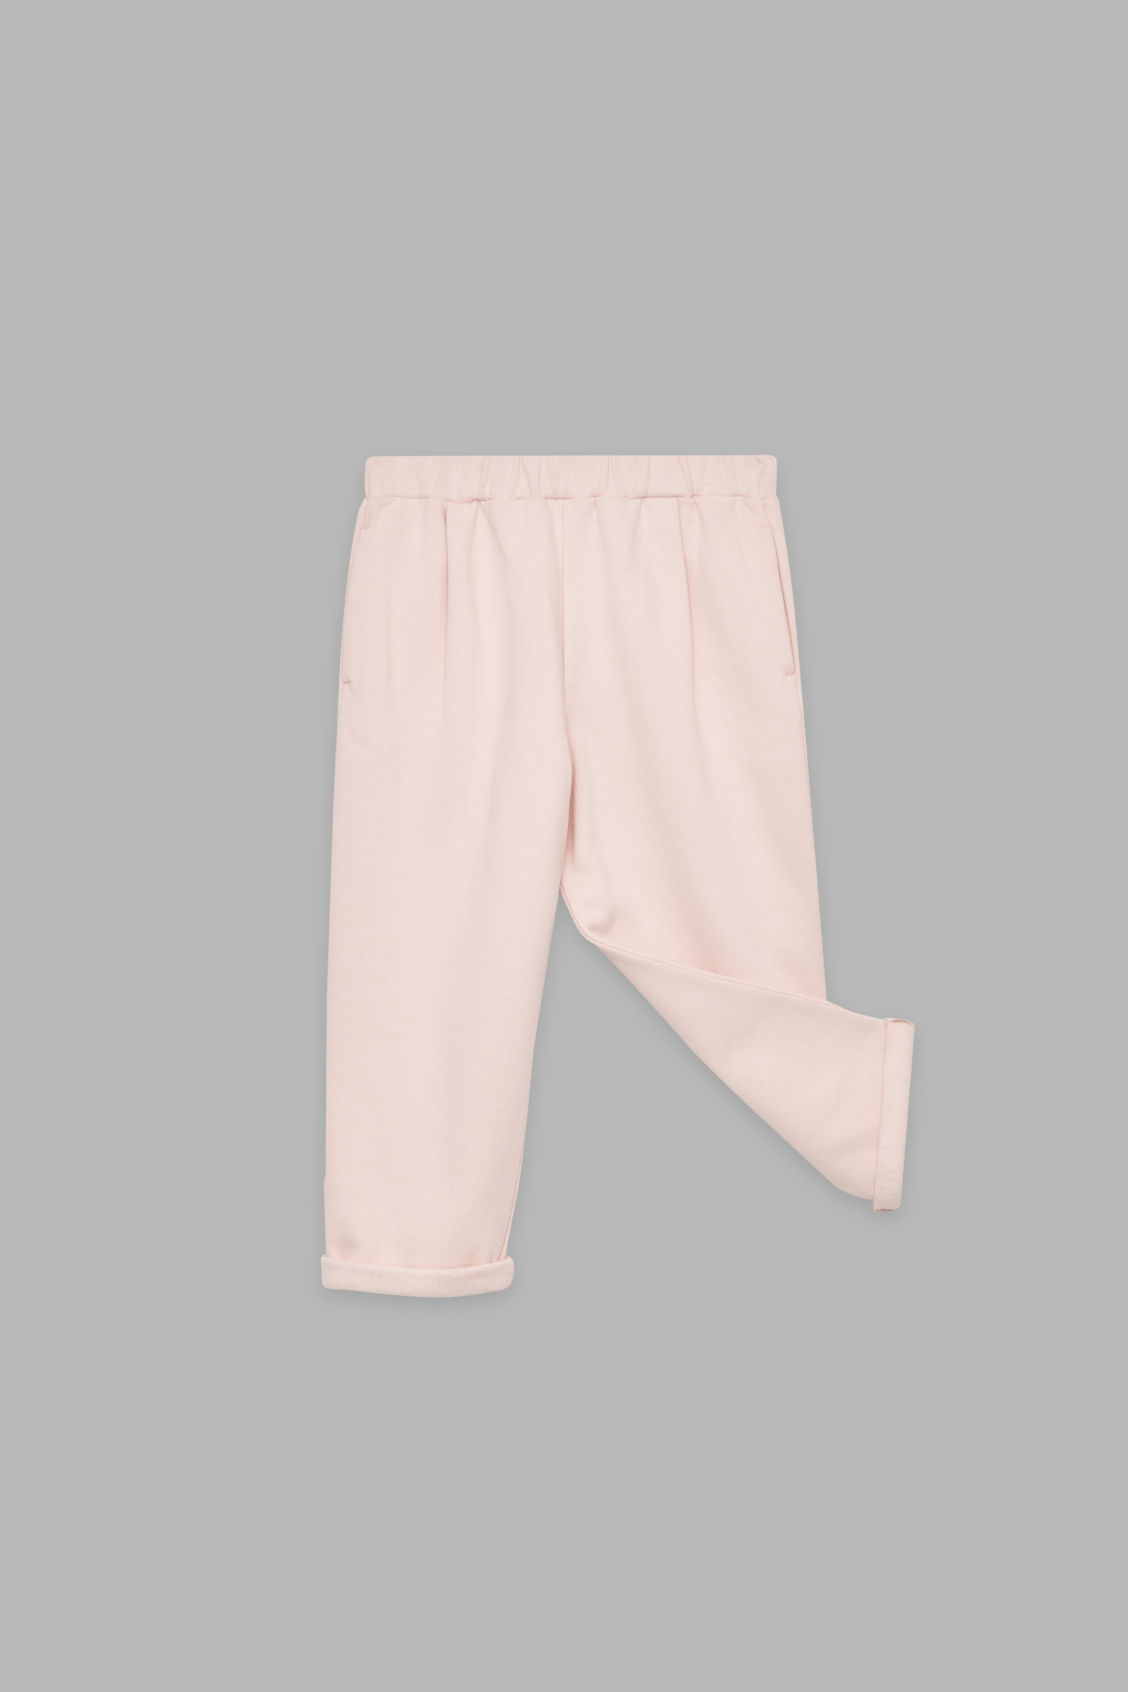 Detailed image of Cos relaxed jersey trousers in pink